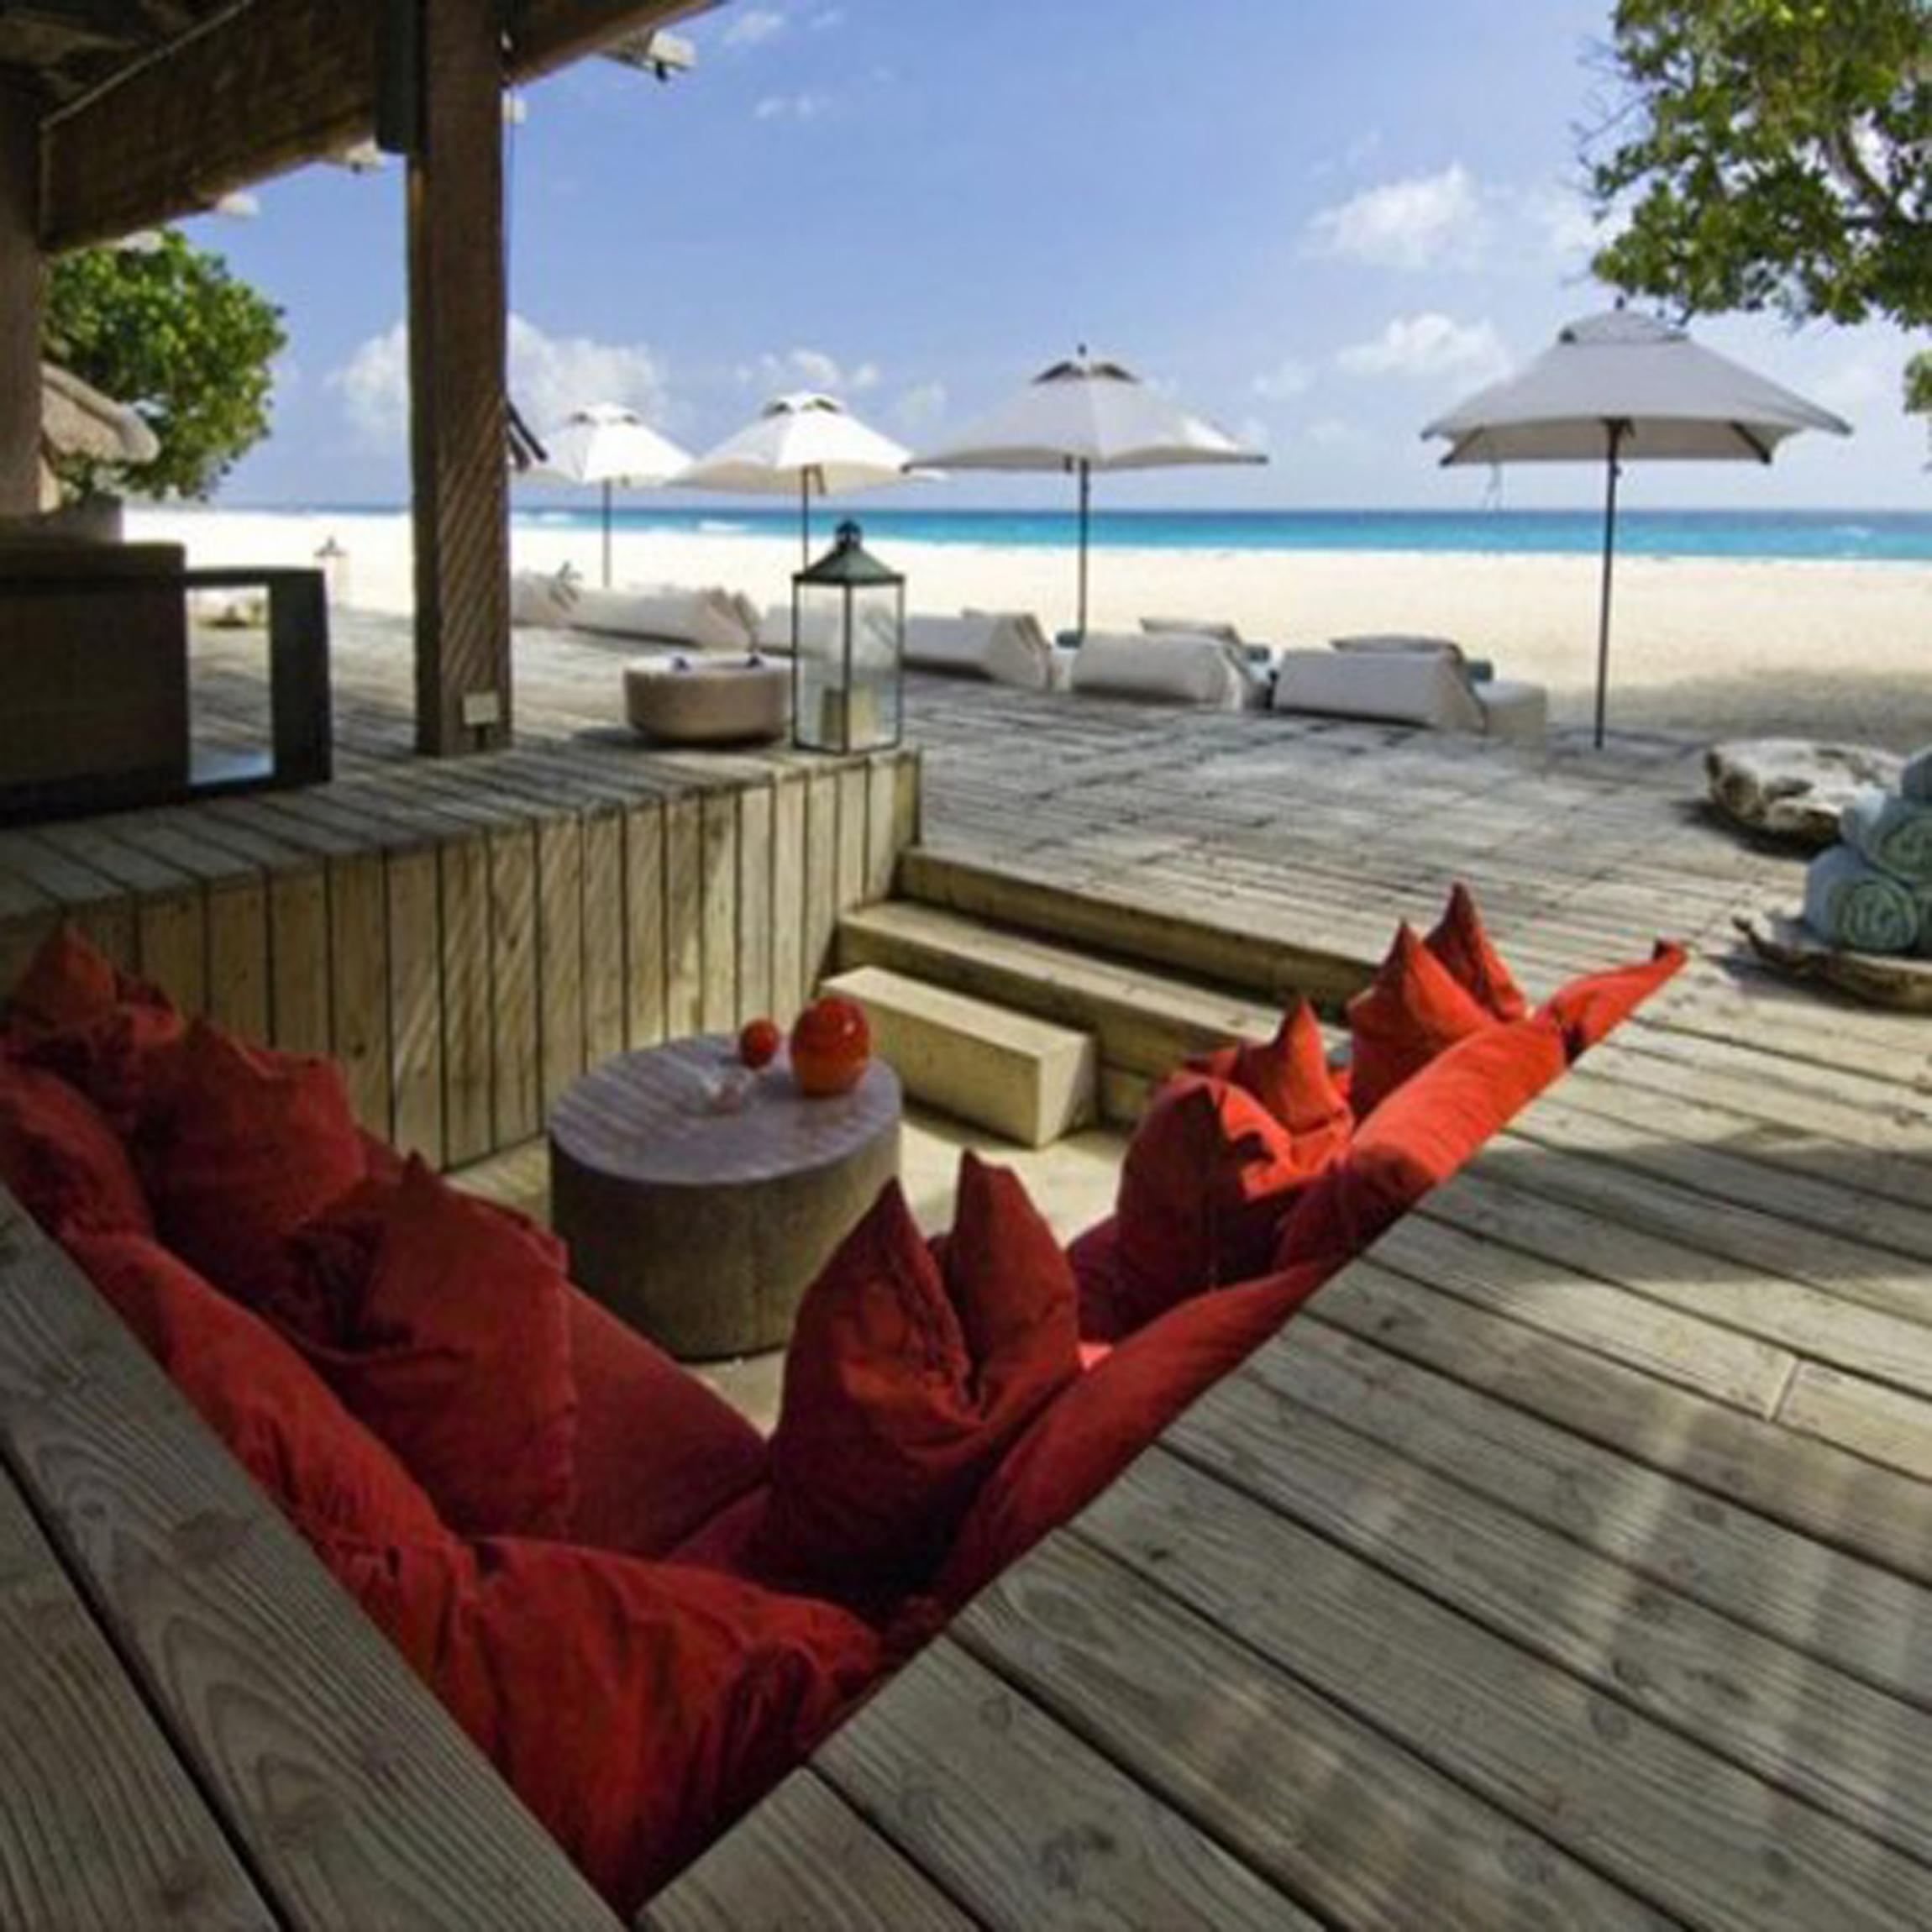 Outdoor Converstation Pit With Sunken Area Plus Equipped By Comfy Red Sifa And Nice Round Table Also Awesome Beach Scenery View (Image 10 of 20)